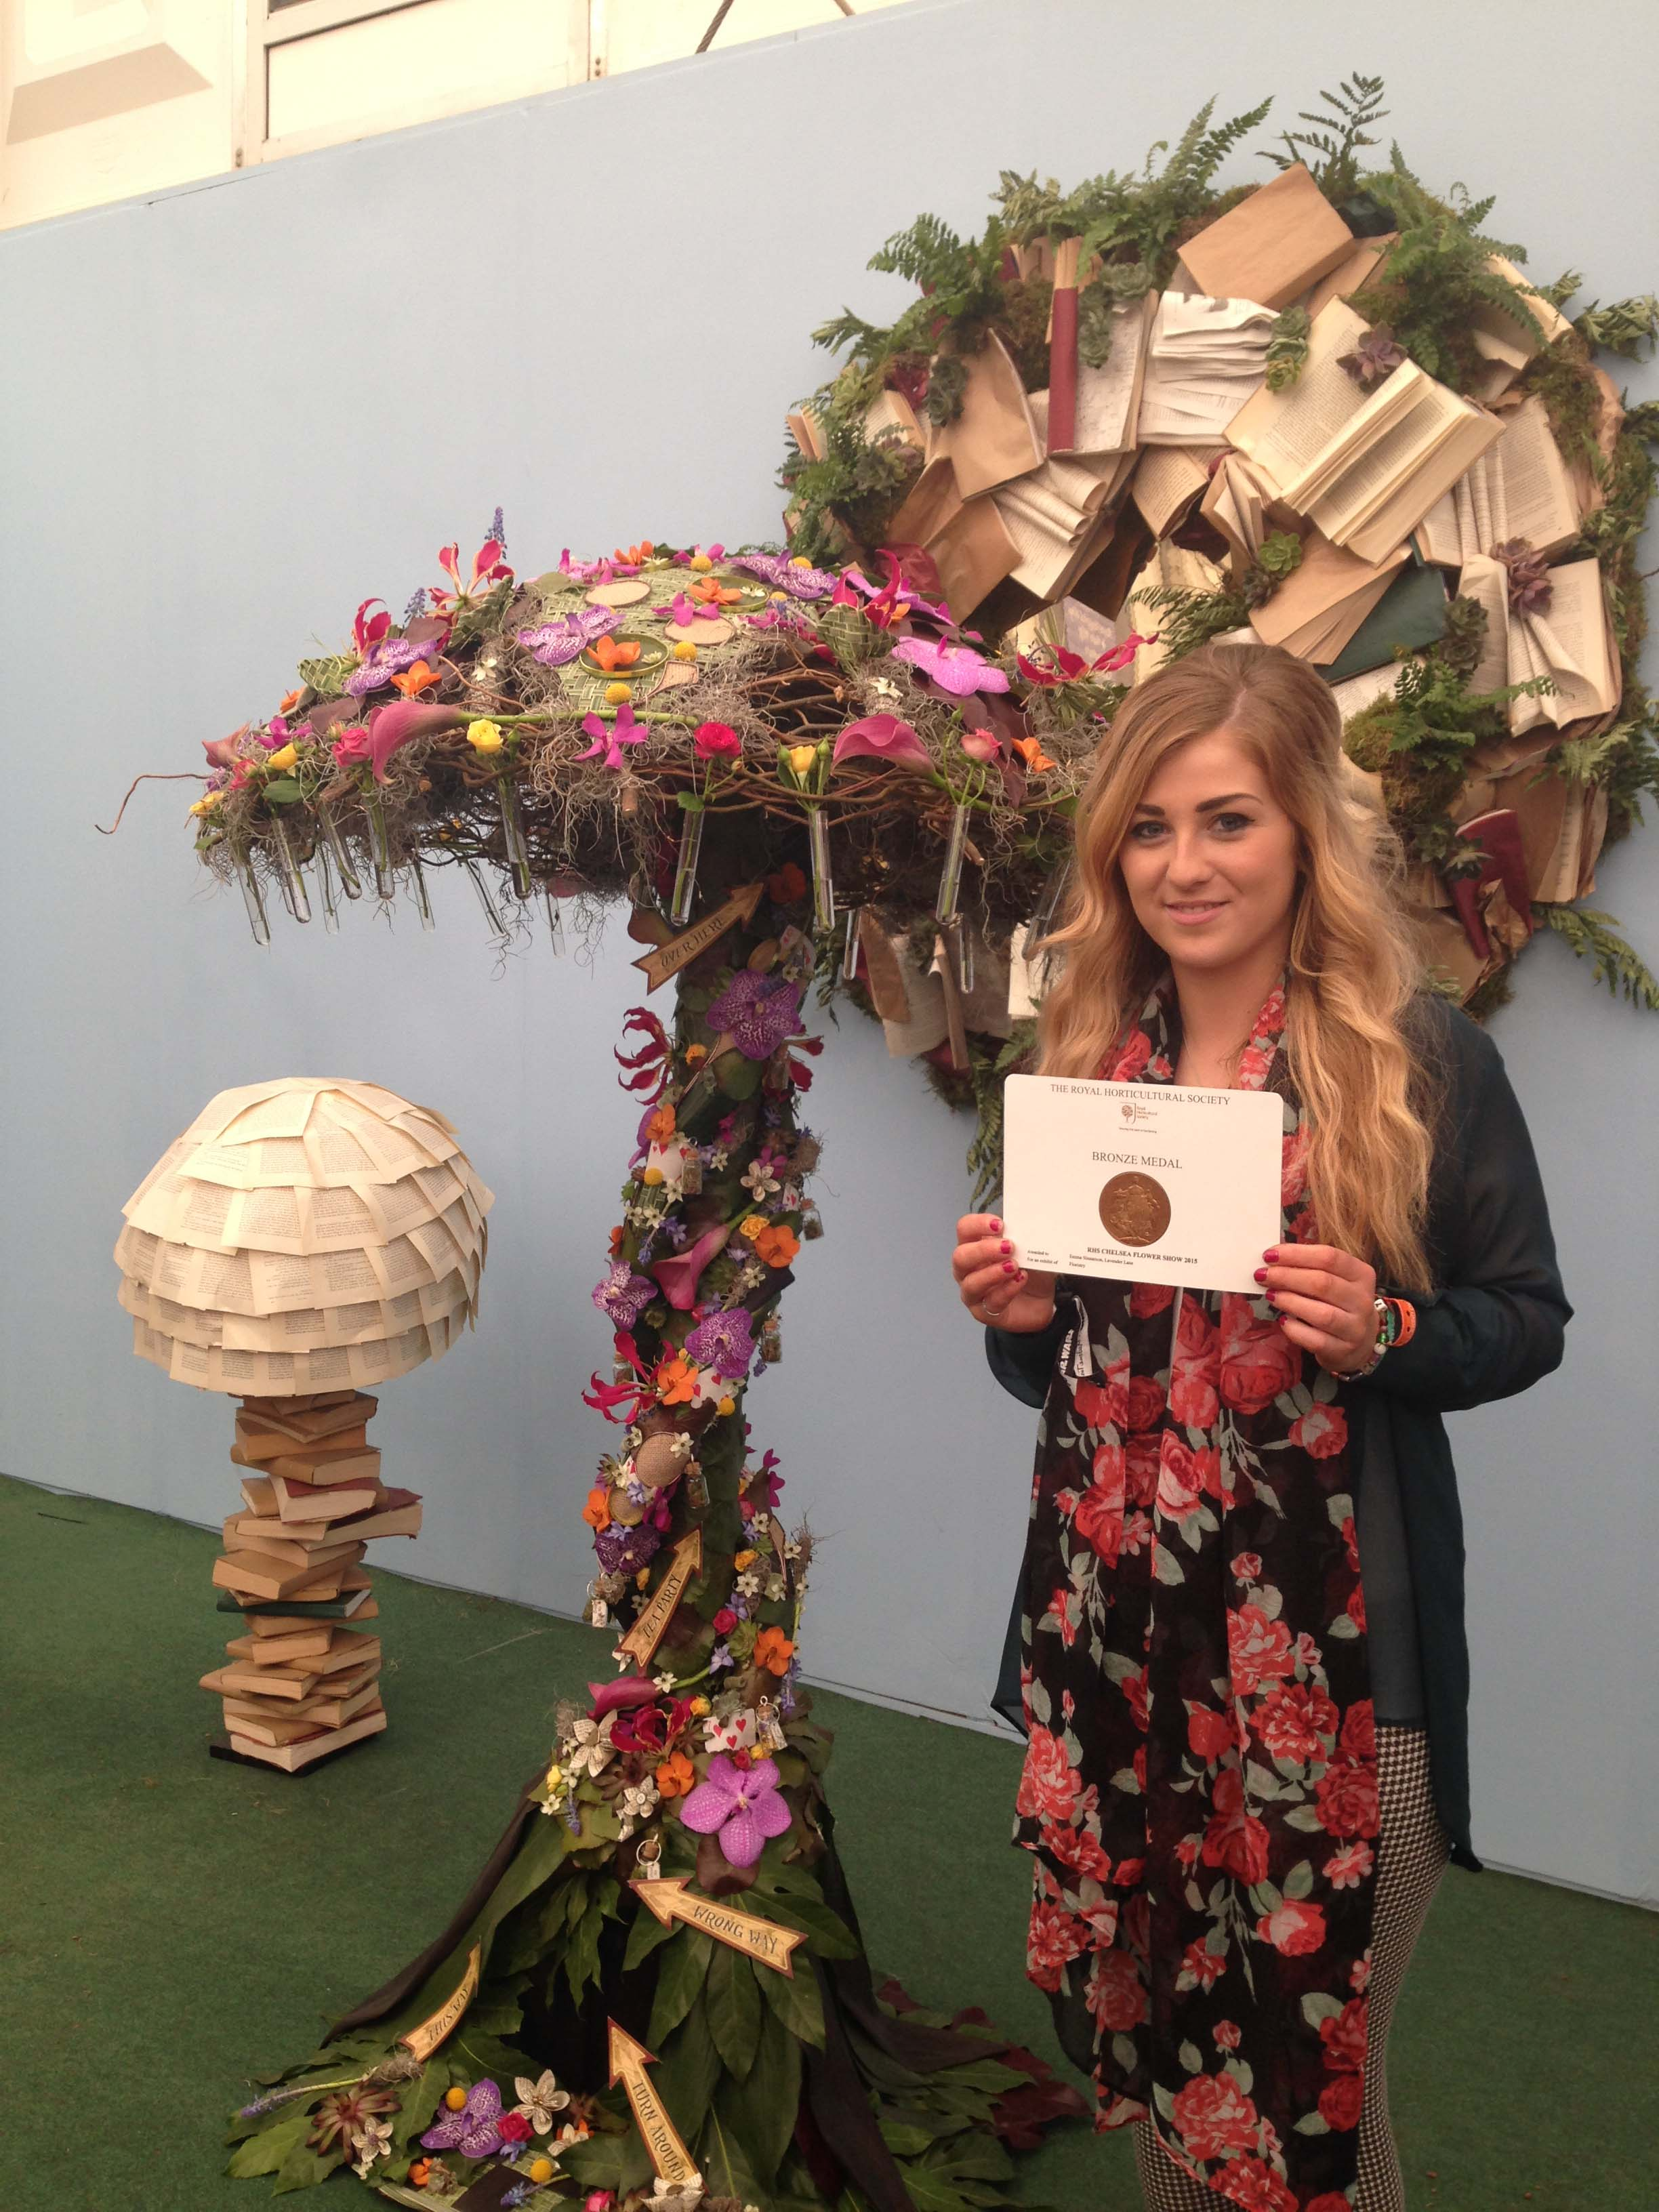 Armagh student Emma Sinnamon with her medal from the Chelsea Flower Show